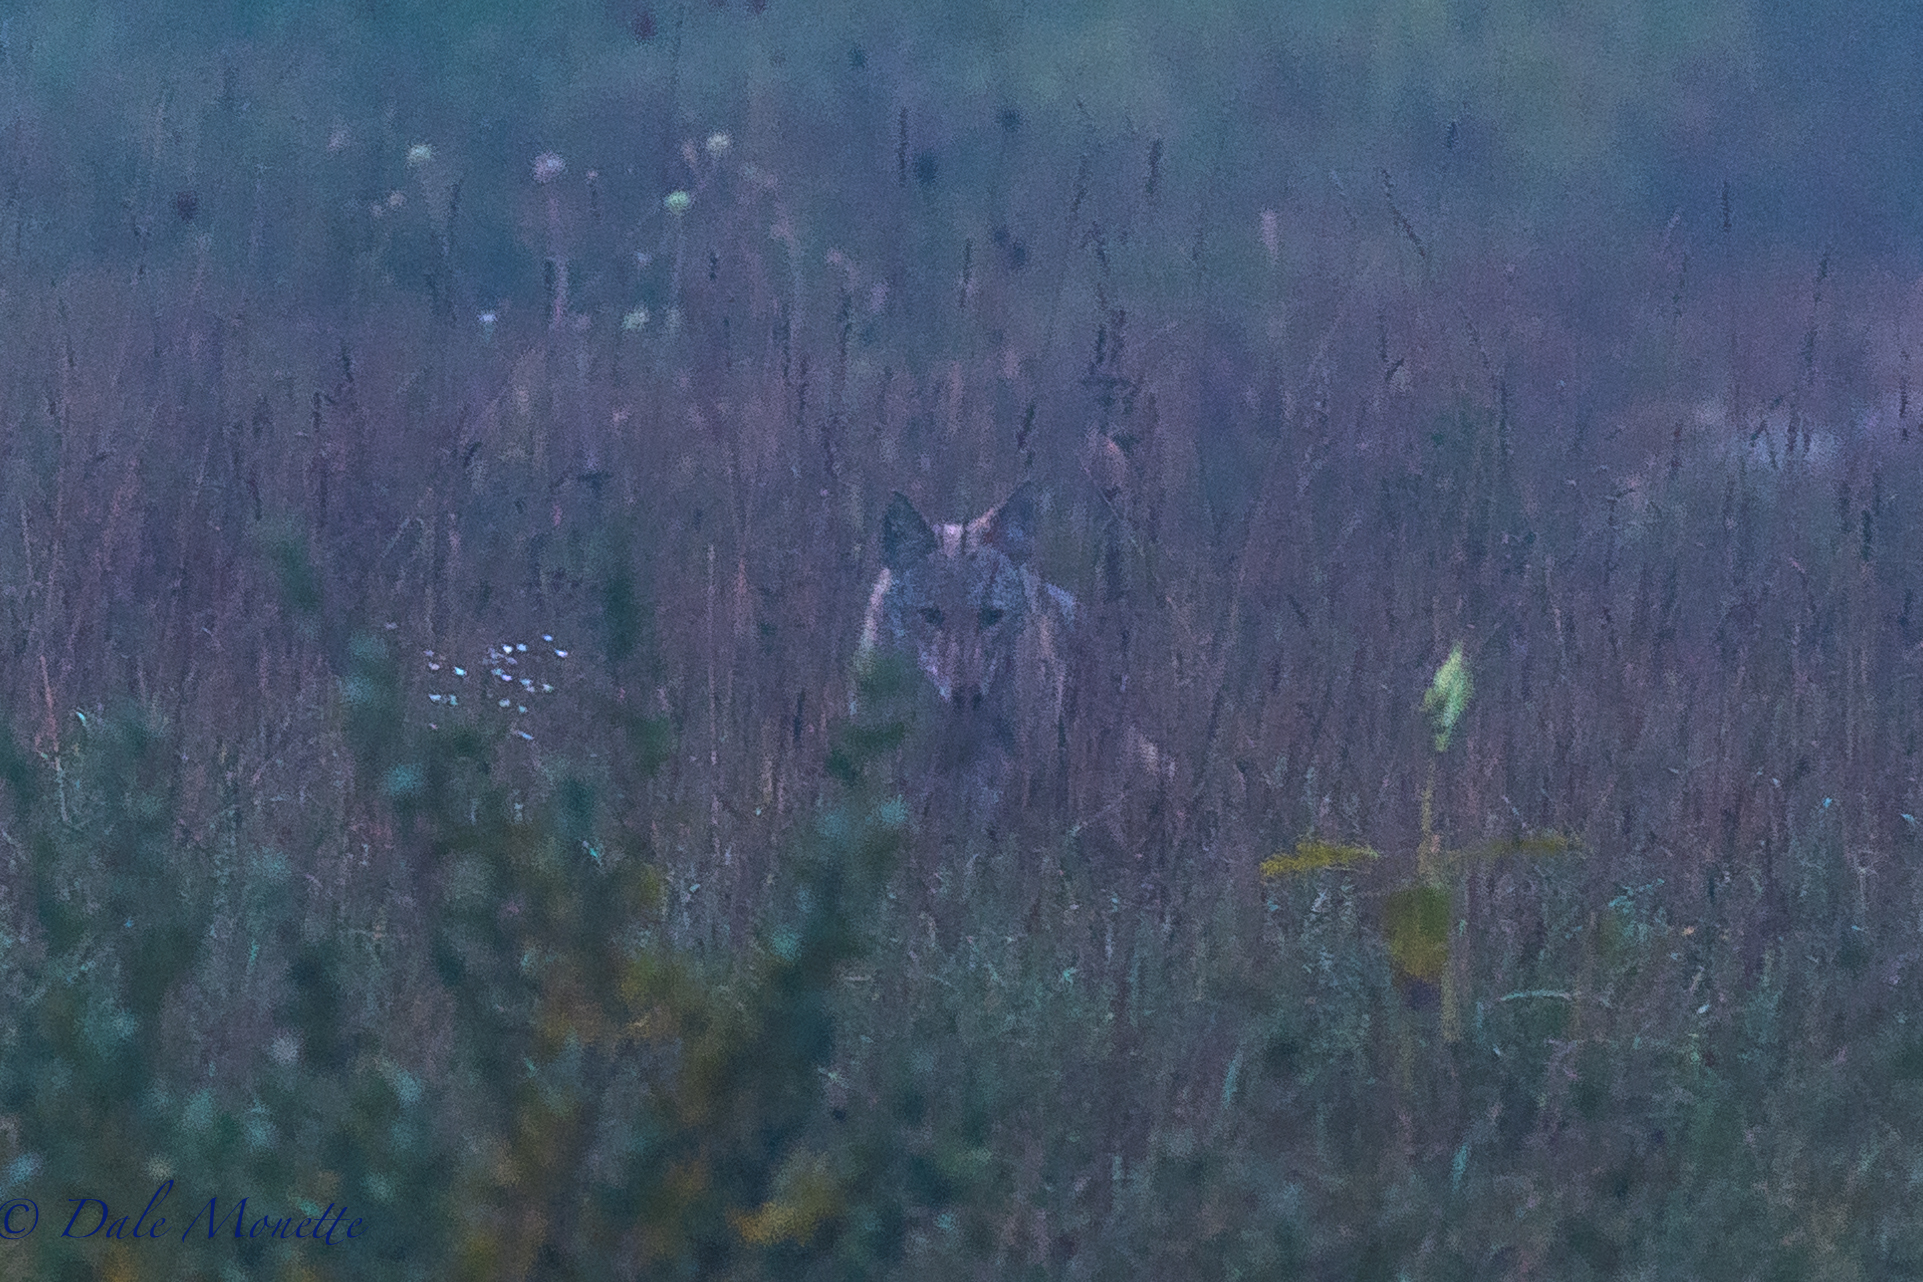 A Quabbin ghost !   A pair of coyotes came in to me out of the fog this morning as I was set up on the edge of a large field and started catching mice.  It was barely light with lots of fog and they just appeared out of the fog !  10/3/16